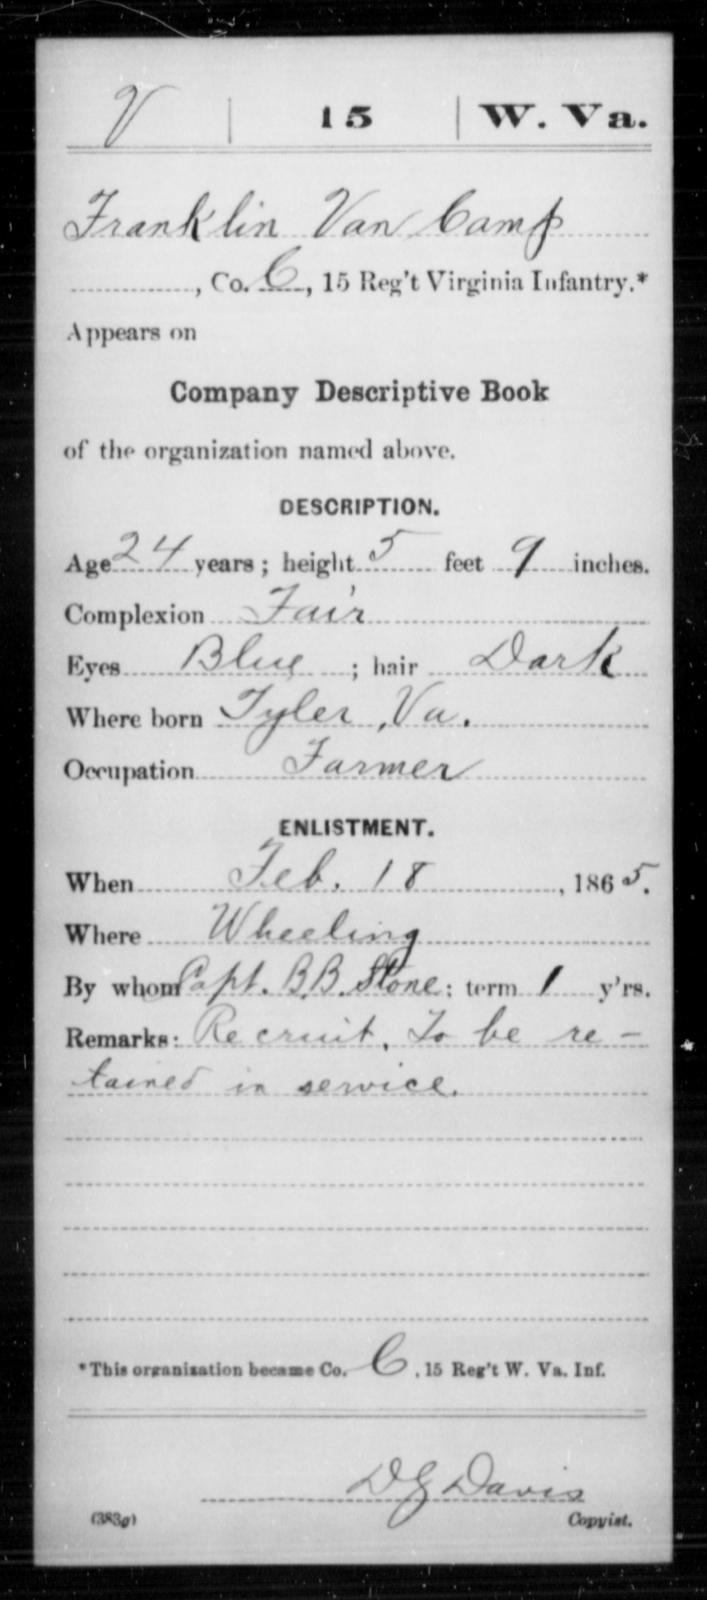 Van Camp, Franklin - Age 24, Year: 1865 - Miscellaneous Card Abstracts of Records - West Virginia